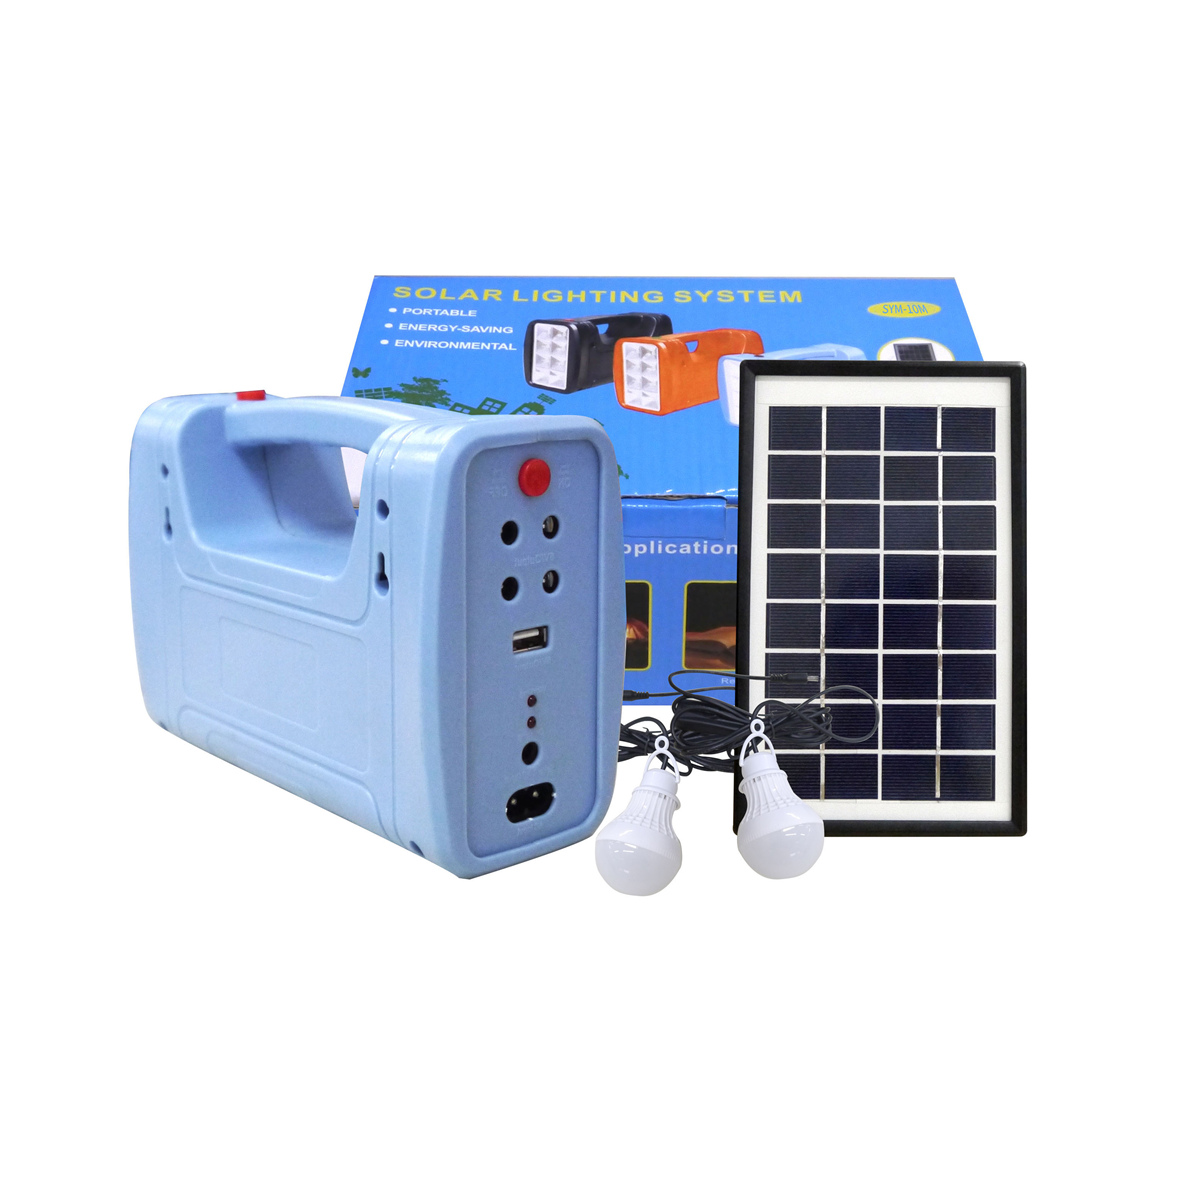 5W Solar Panel Portable Solar AC Kit Solar Power System Camping Portable Generator With Bulbs